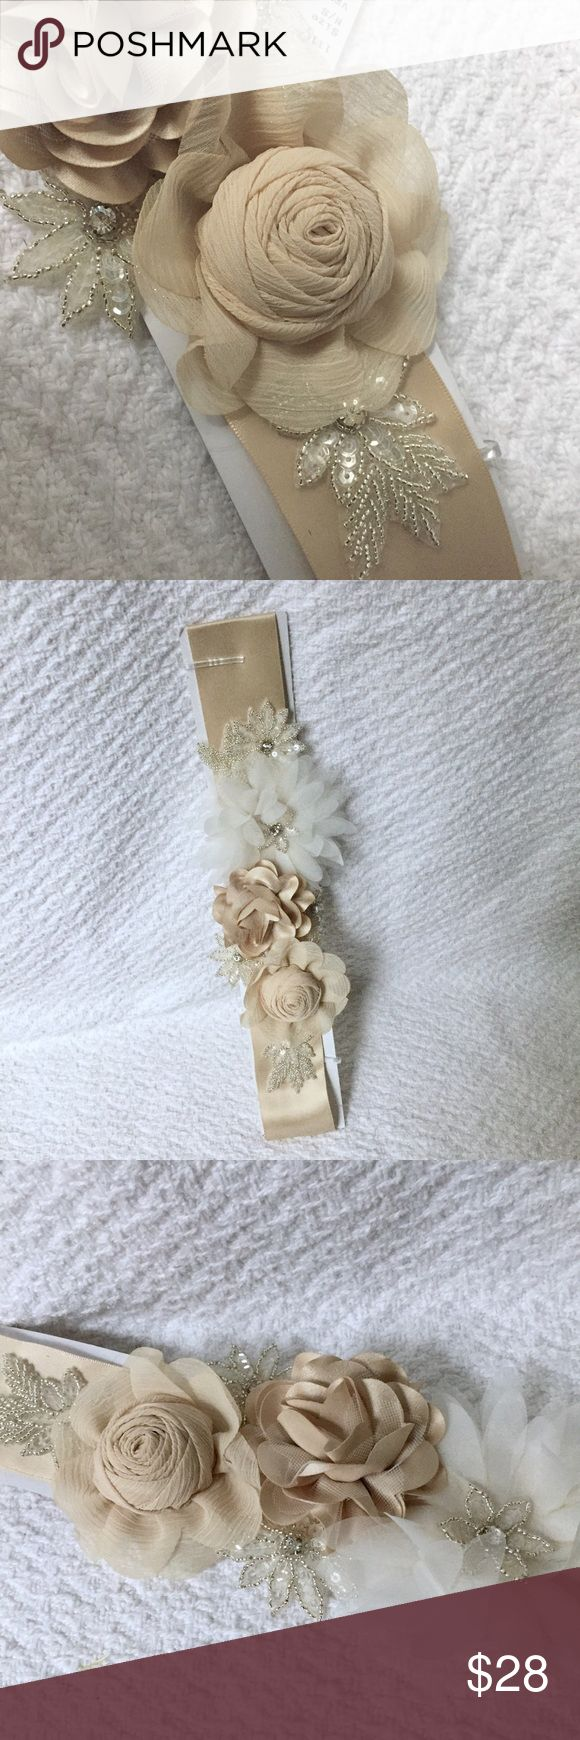 wedding dress flower sash ribbon bought for my wedding but never wore still has tag